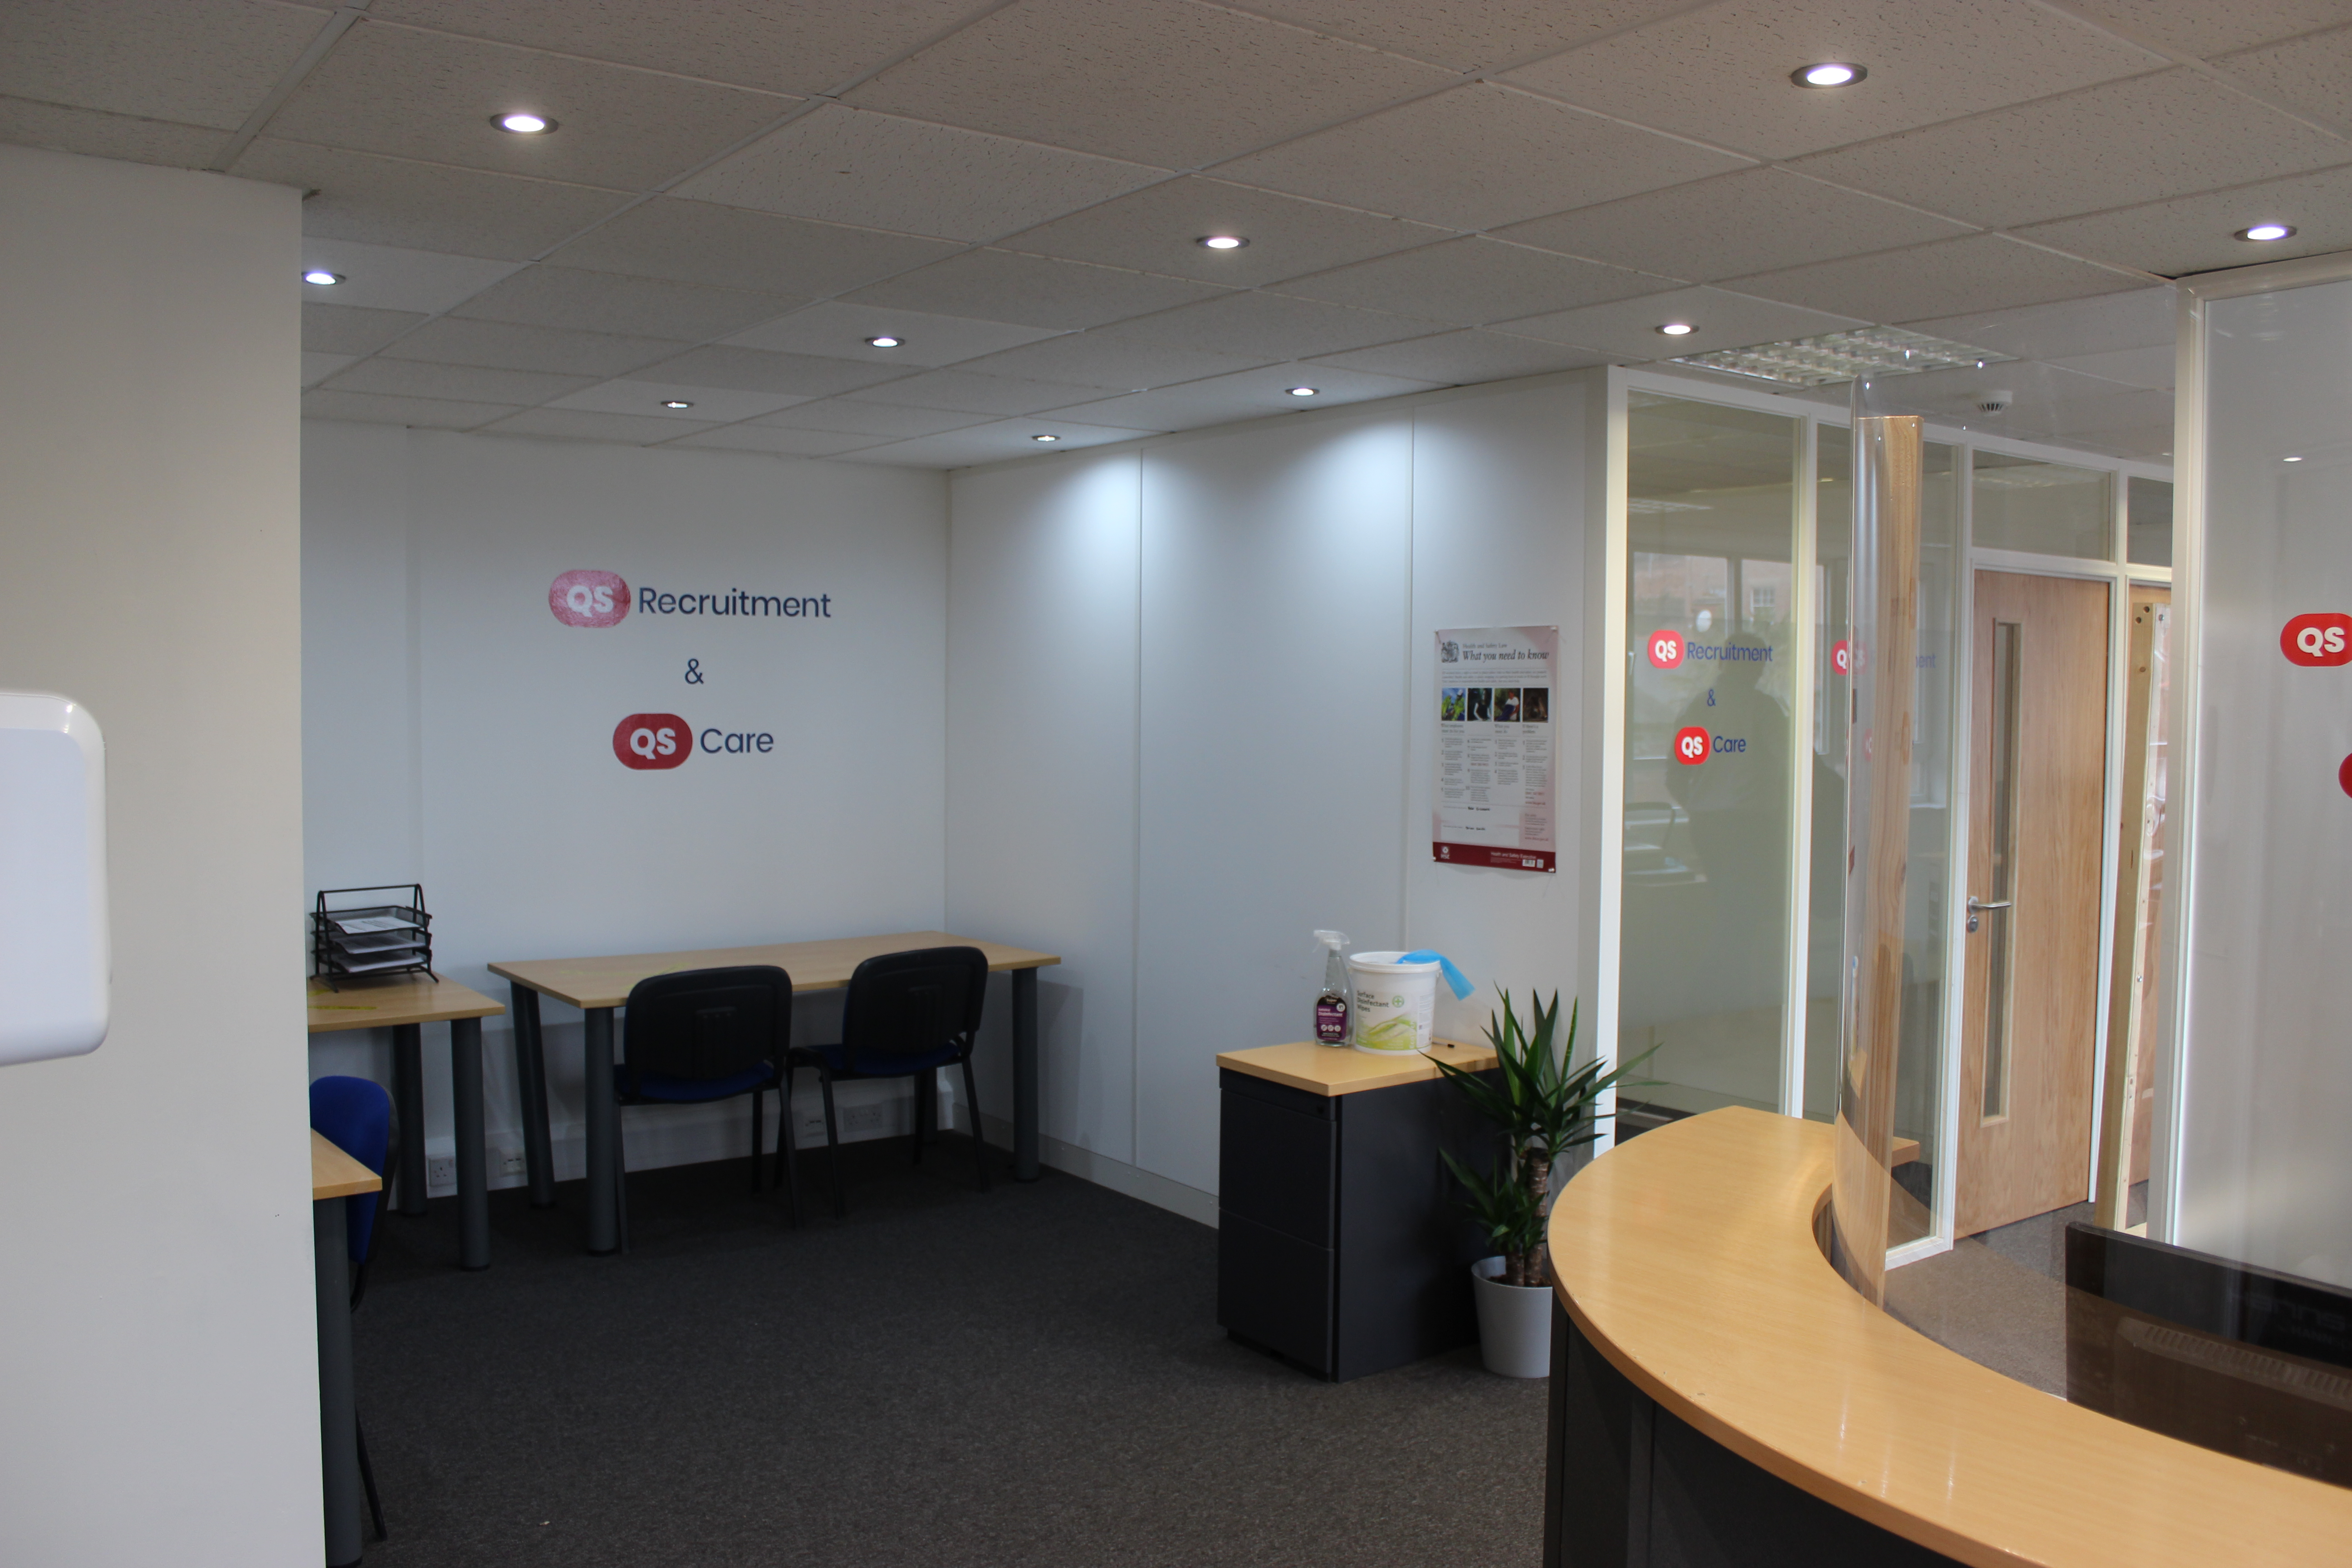 QS Recruitment expands to new central office